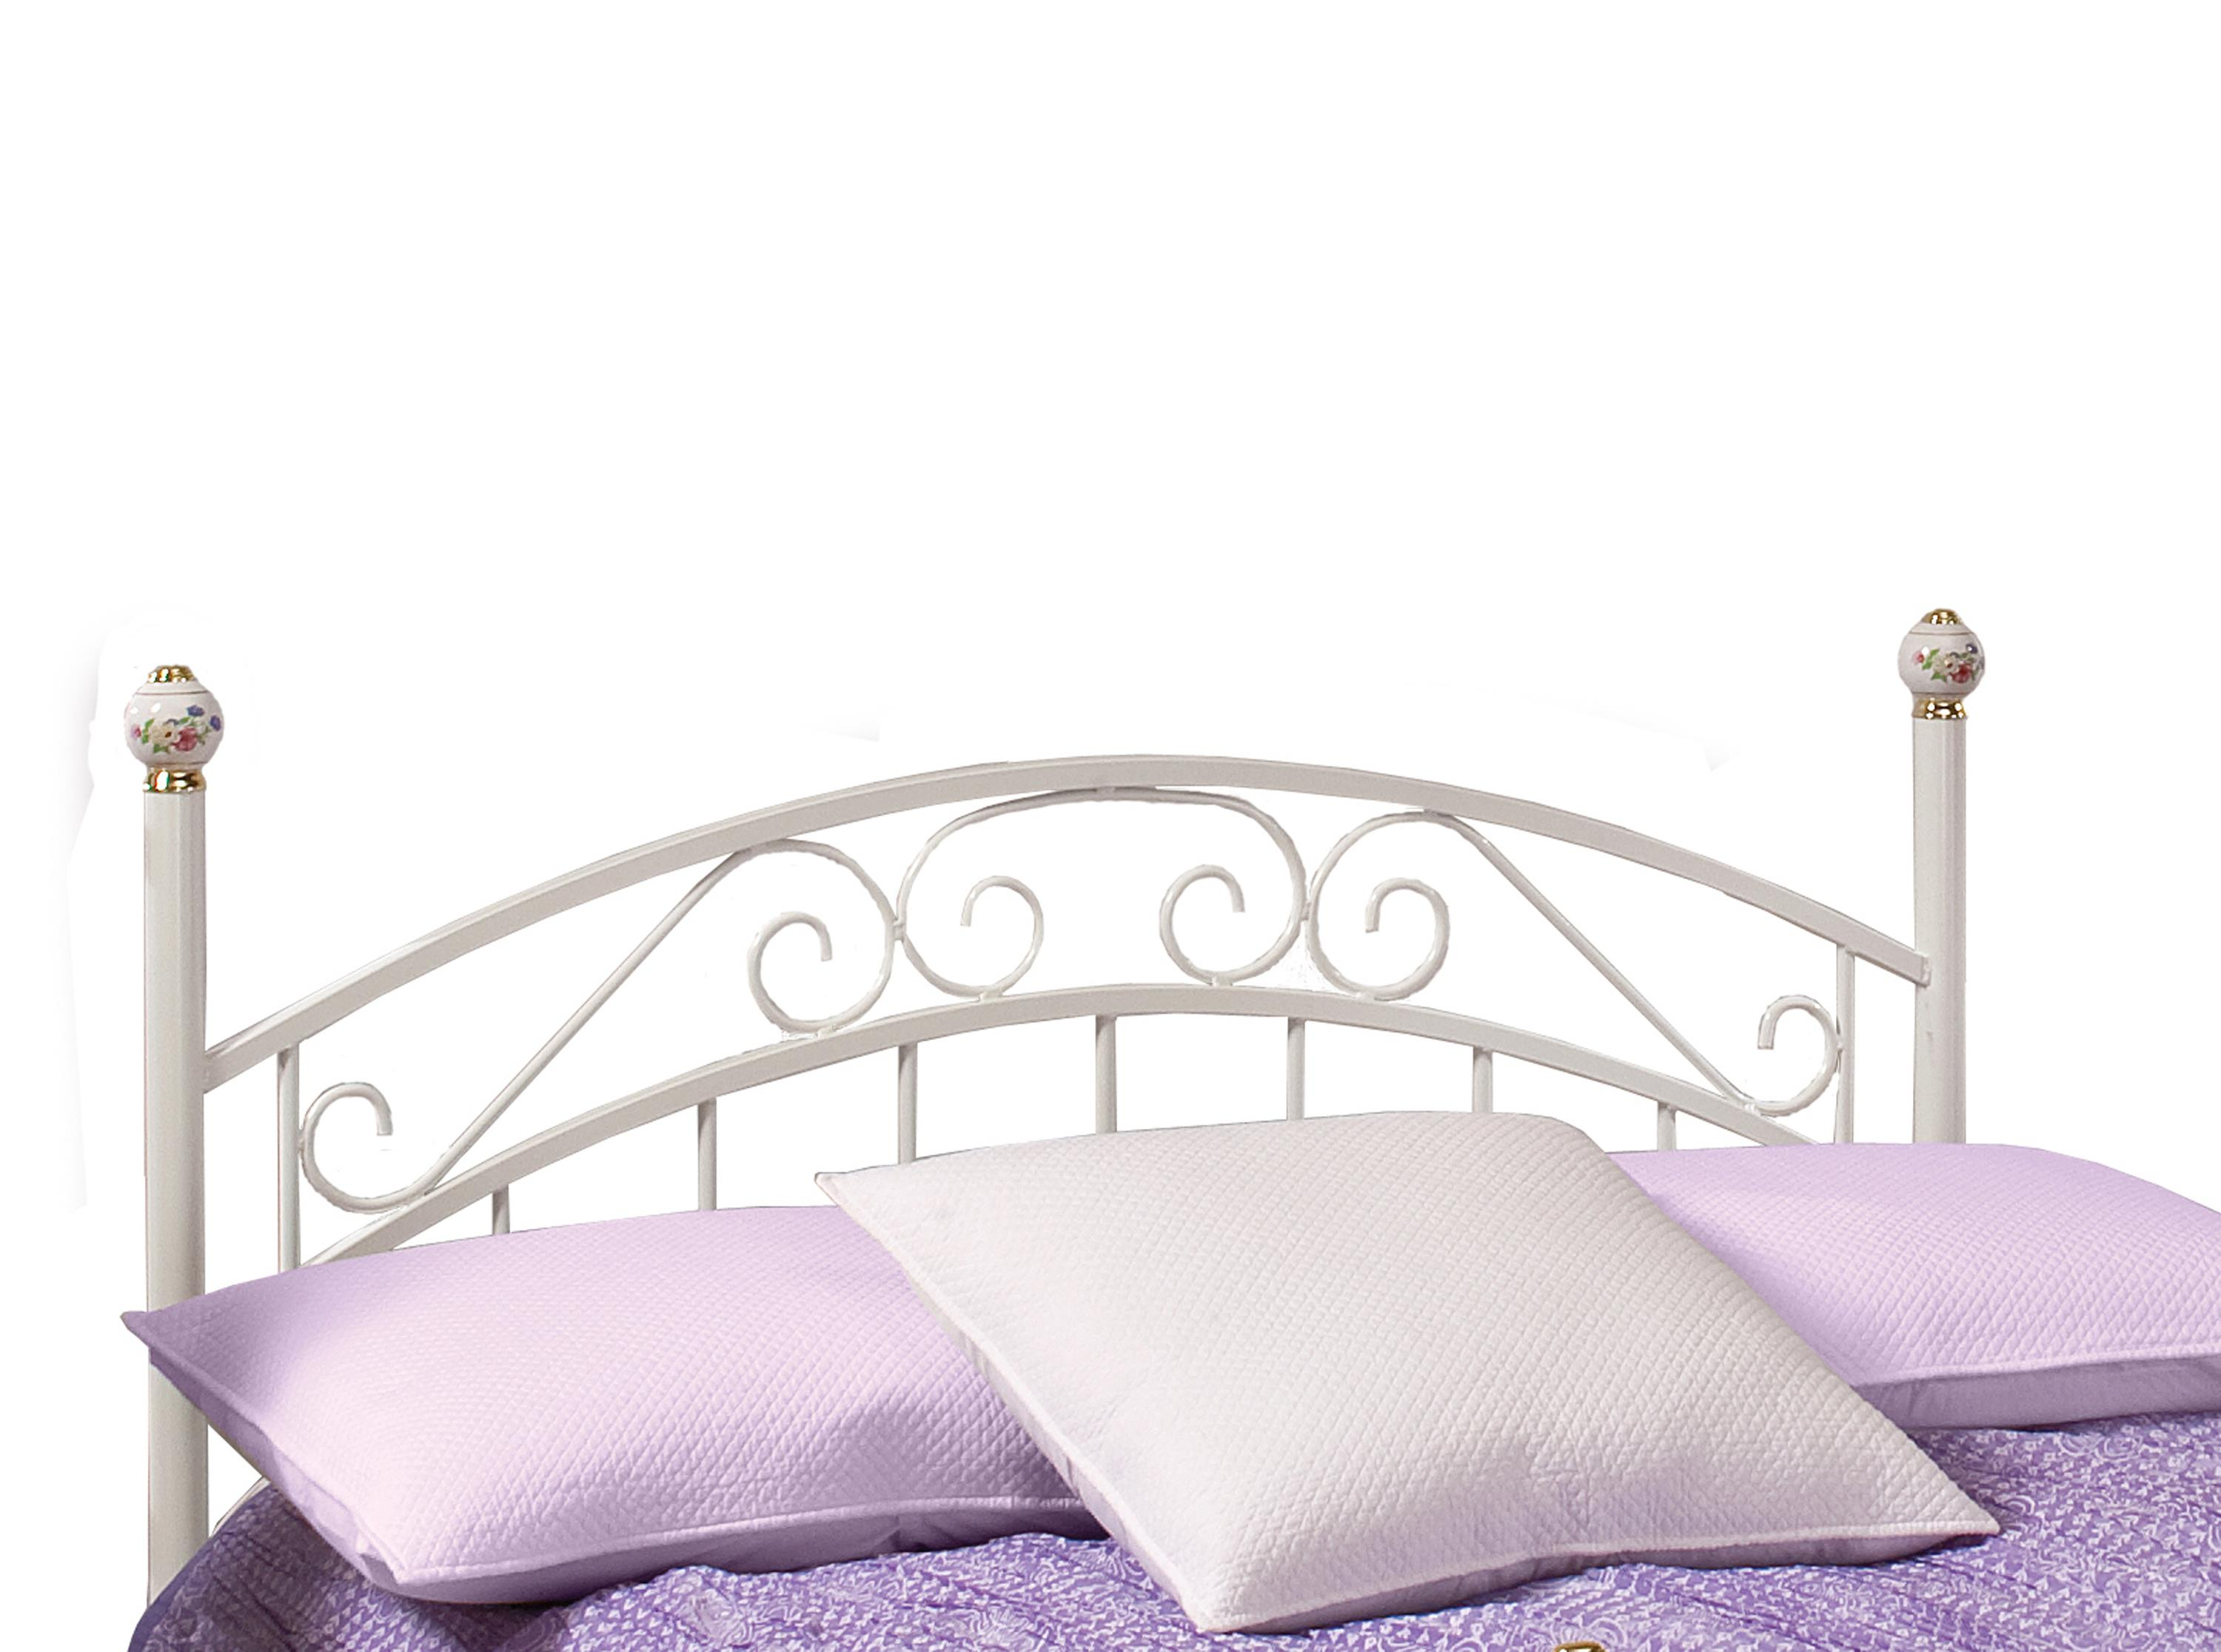 Hillsdale Metal Beds Emily Full Headboard and Rails - Item Number: 1864HFR